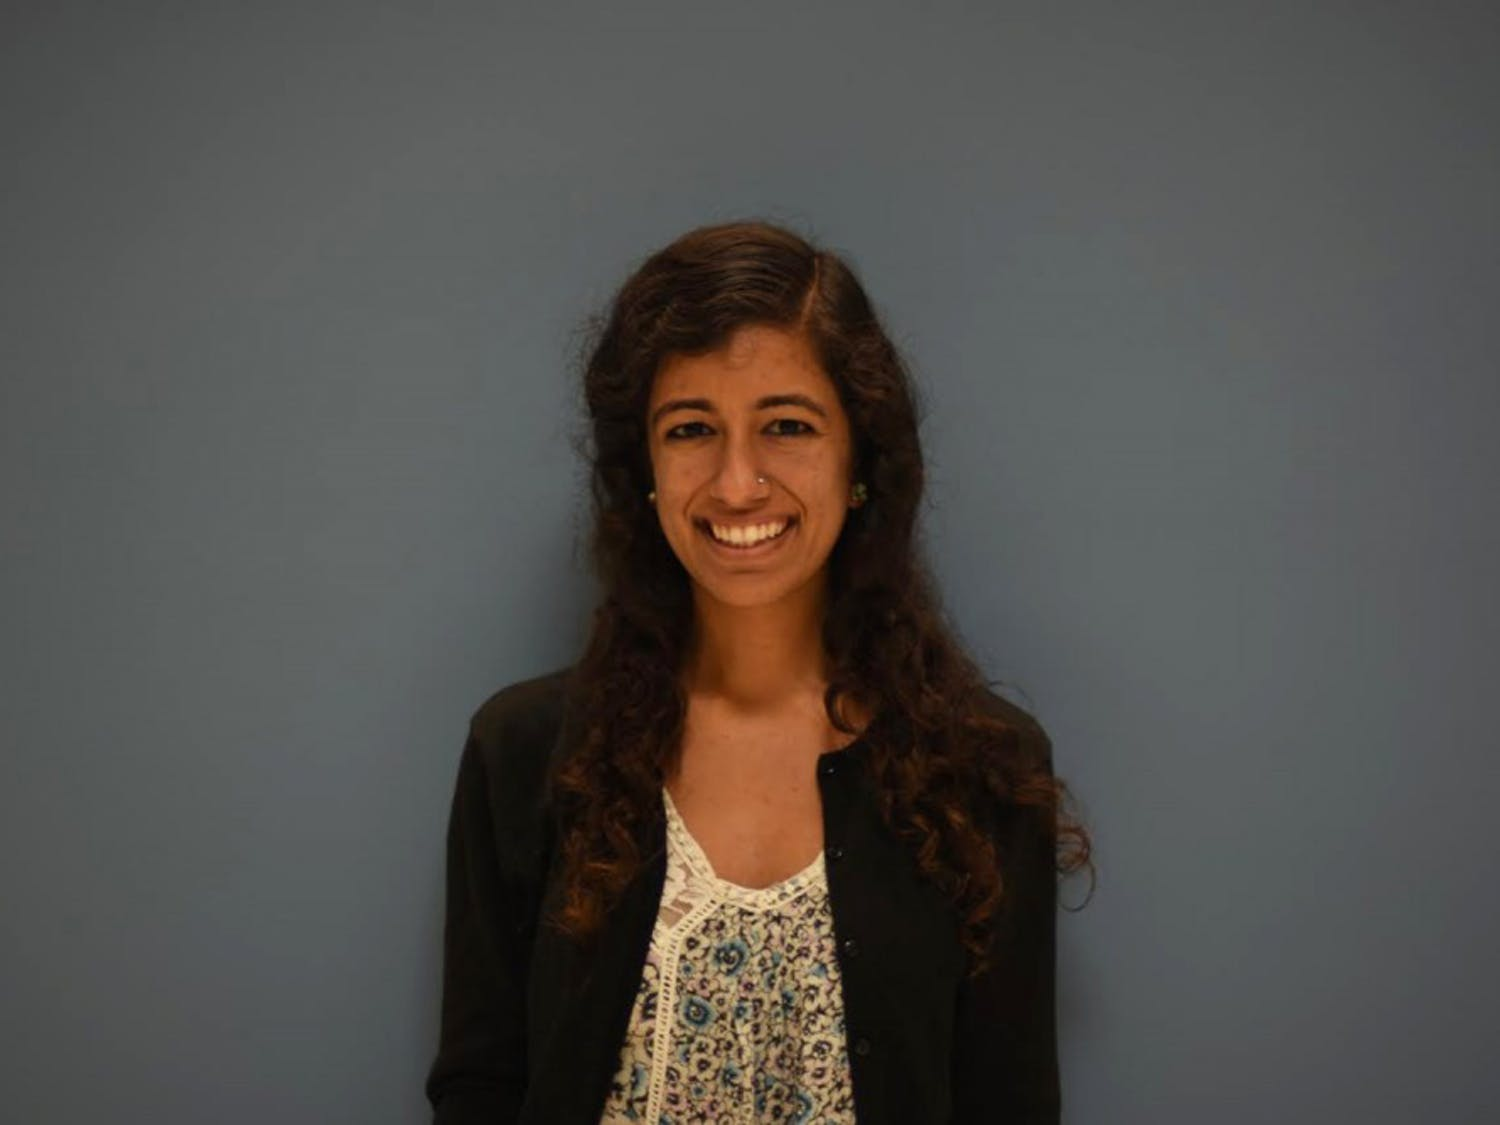 Medical Student, Neha Verma, who started the writing program for survivors of domestic abuse.